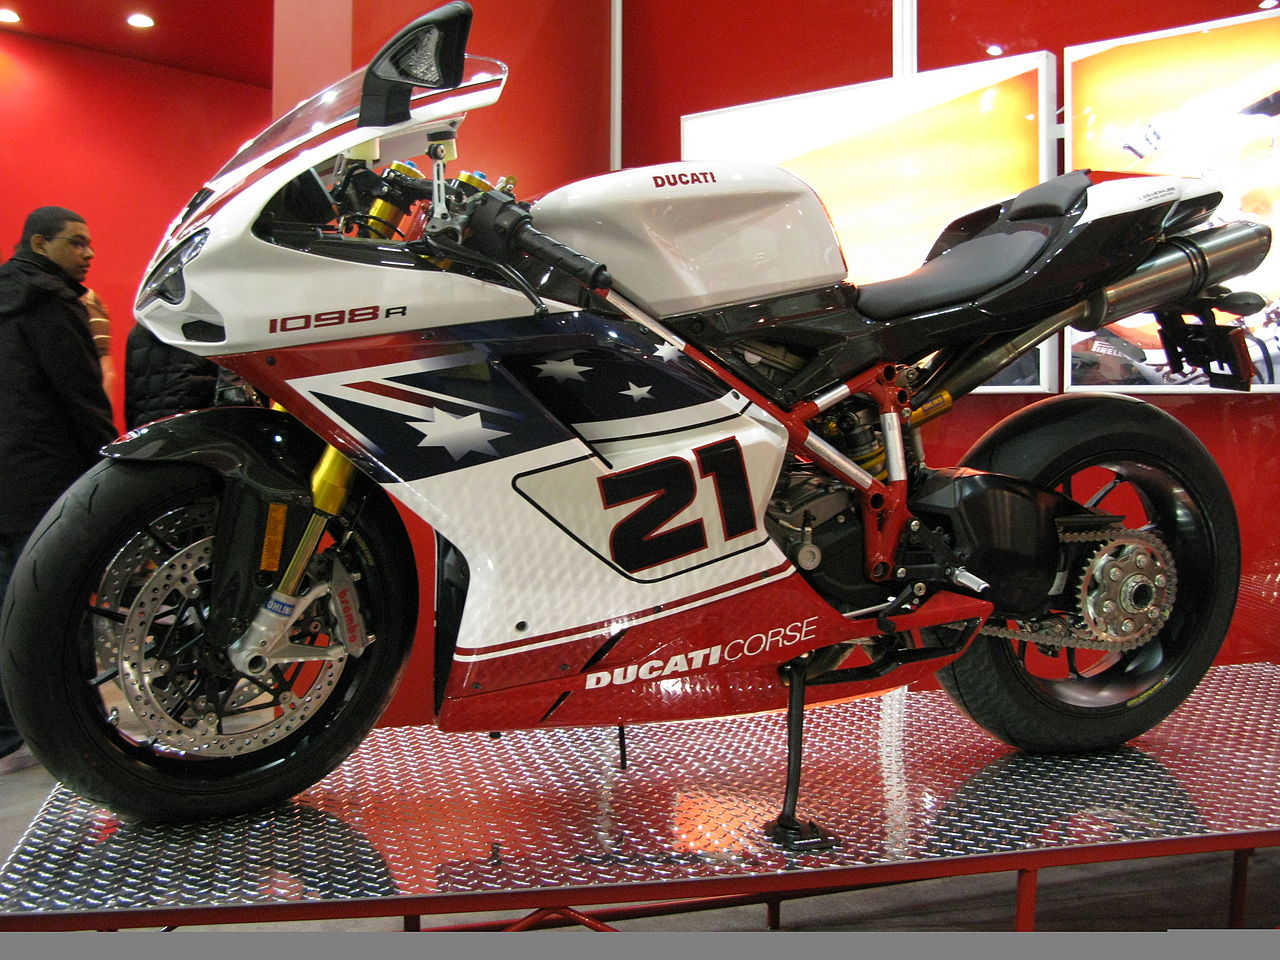 Ducati R Bayliss Limited Edition For Sale